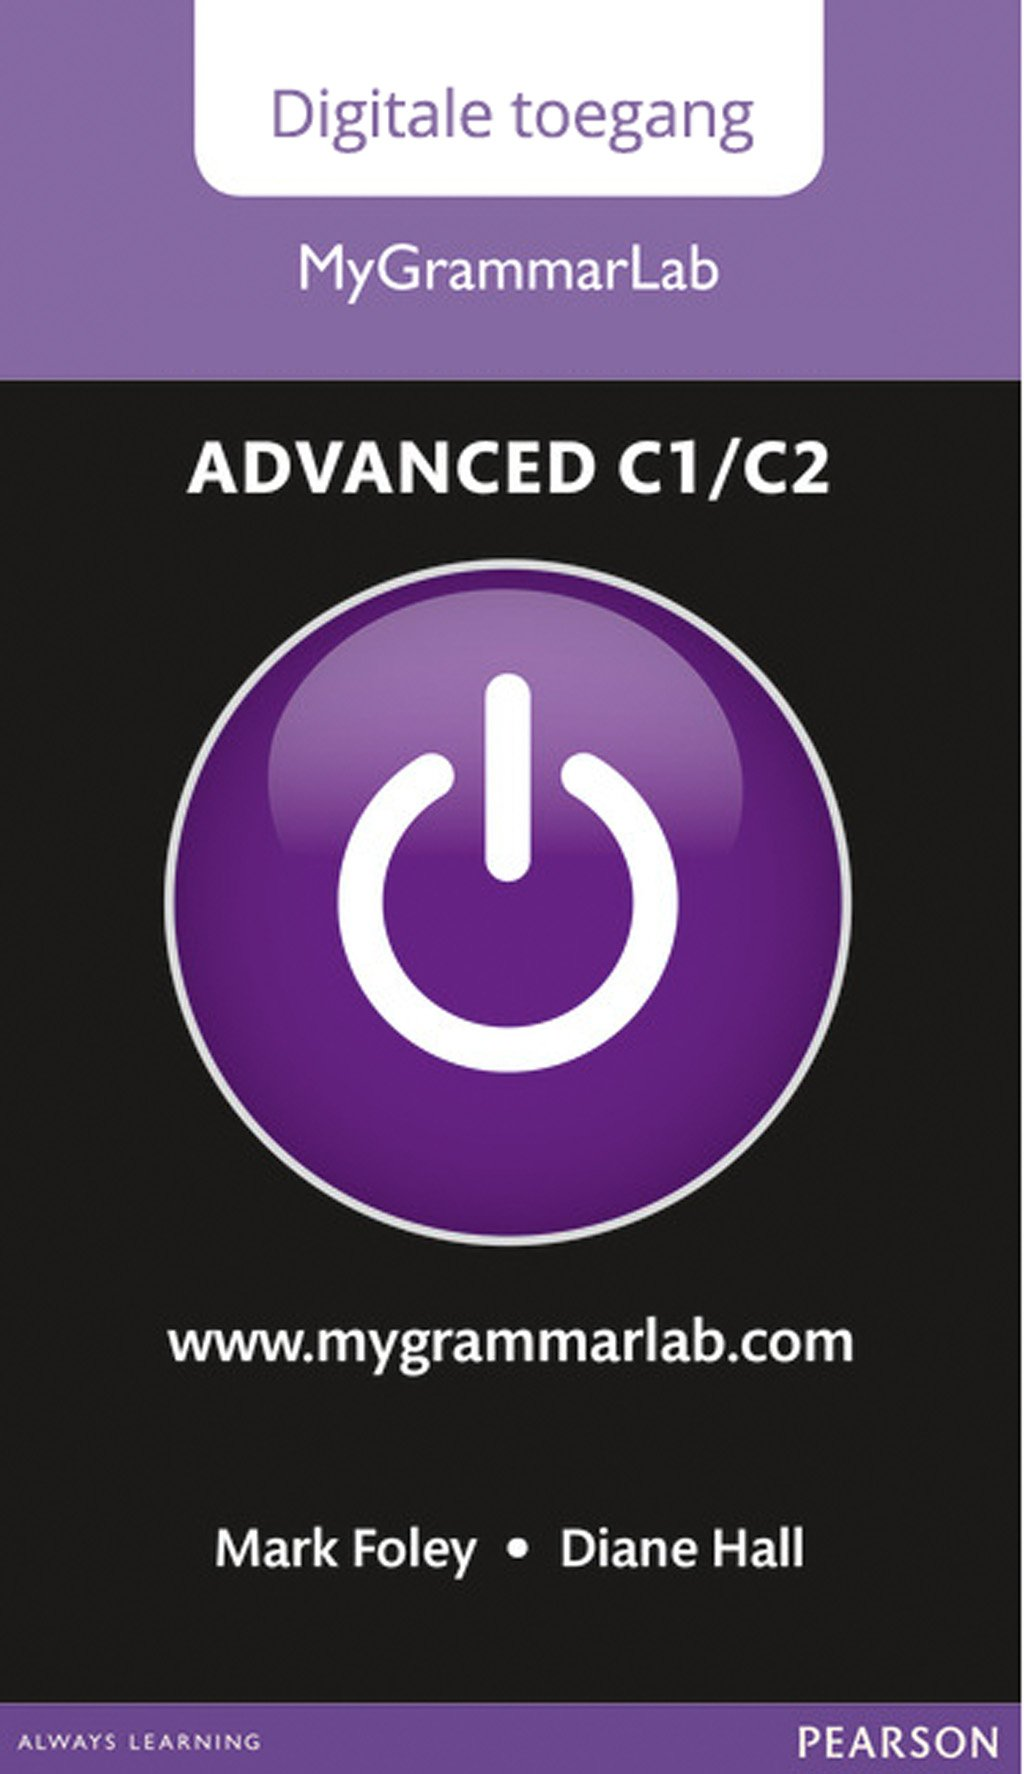 MyGrammarLab Advanced